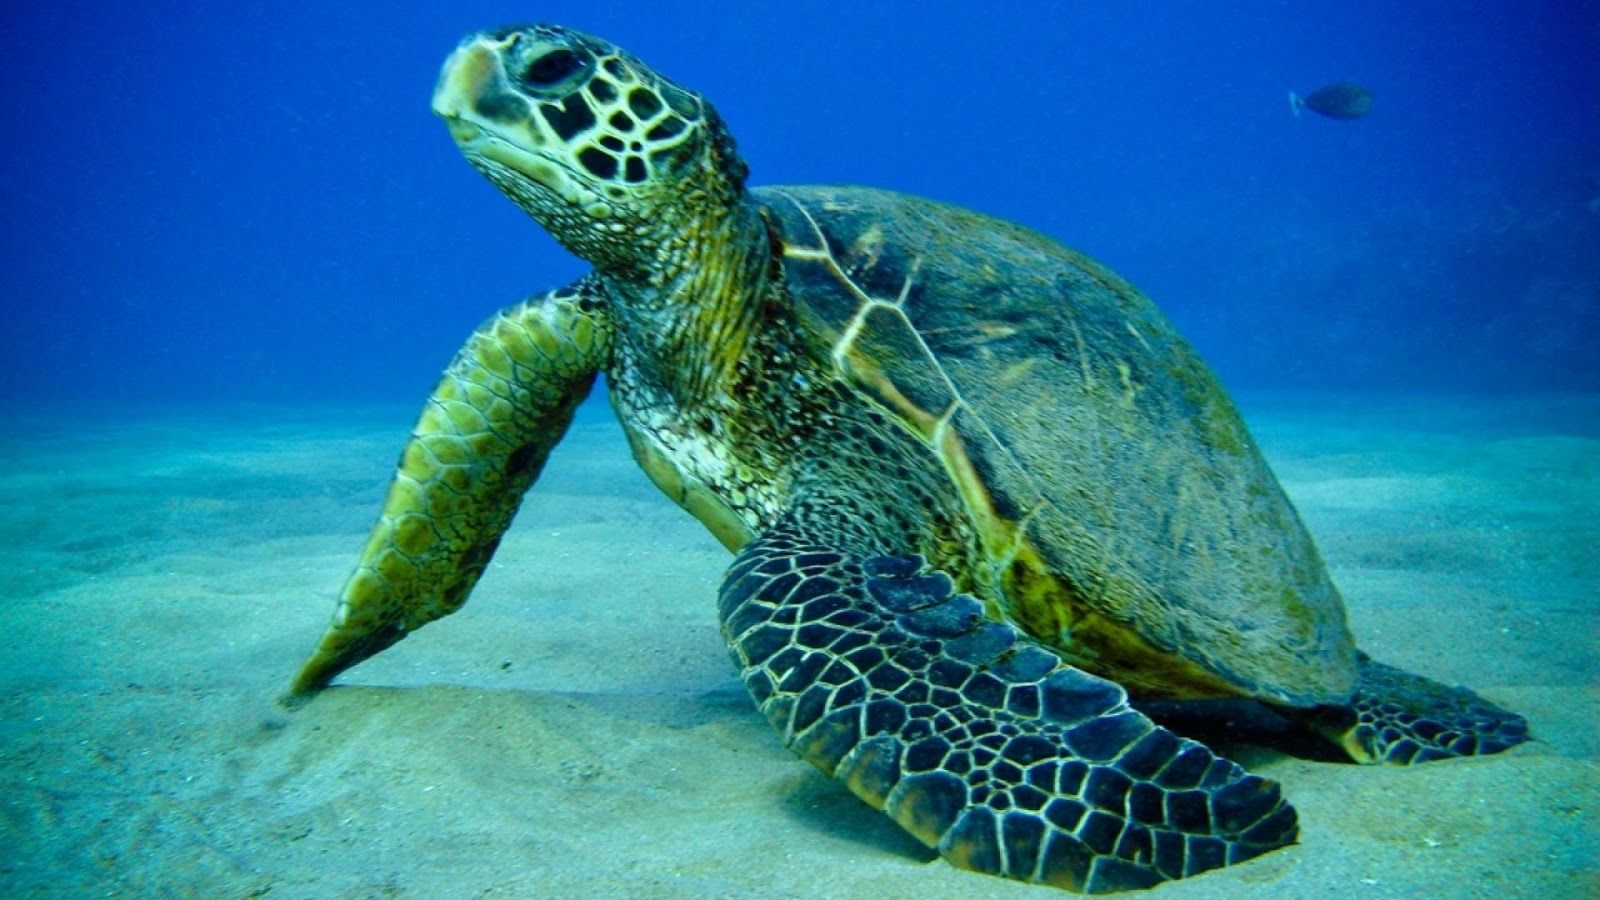 Beautiful Wallpapers Turtle hd wallpaper 1600x900